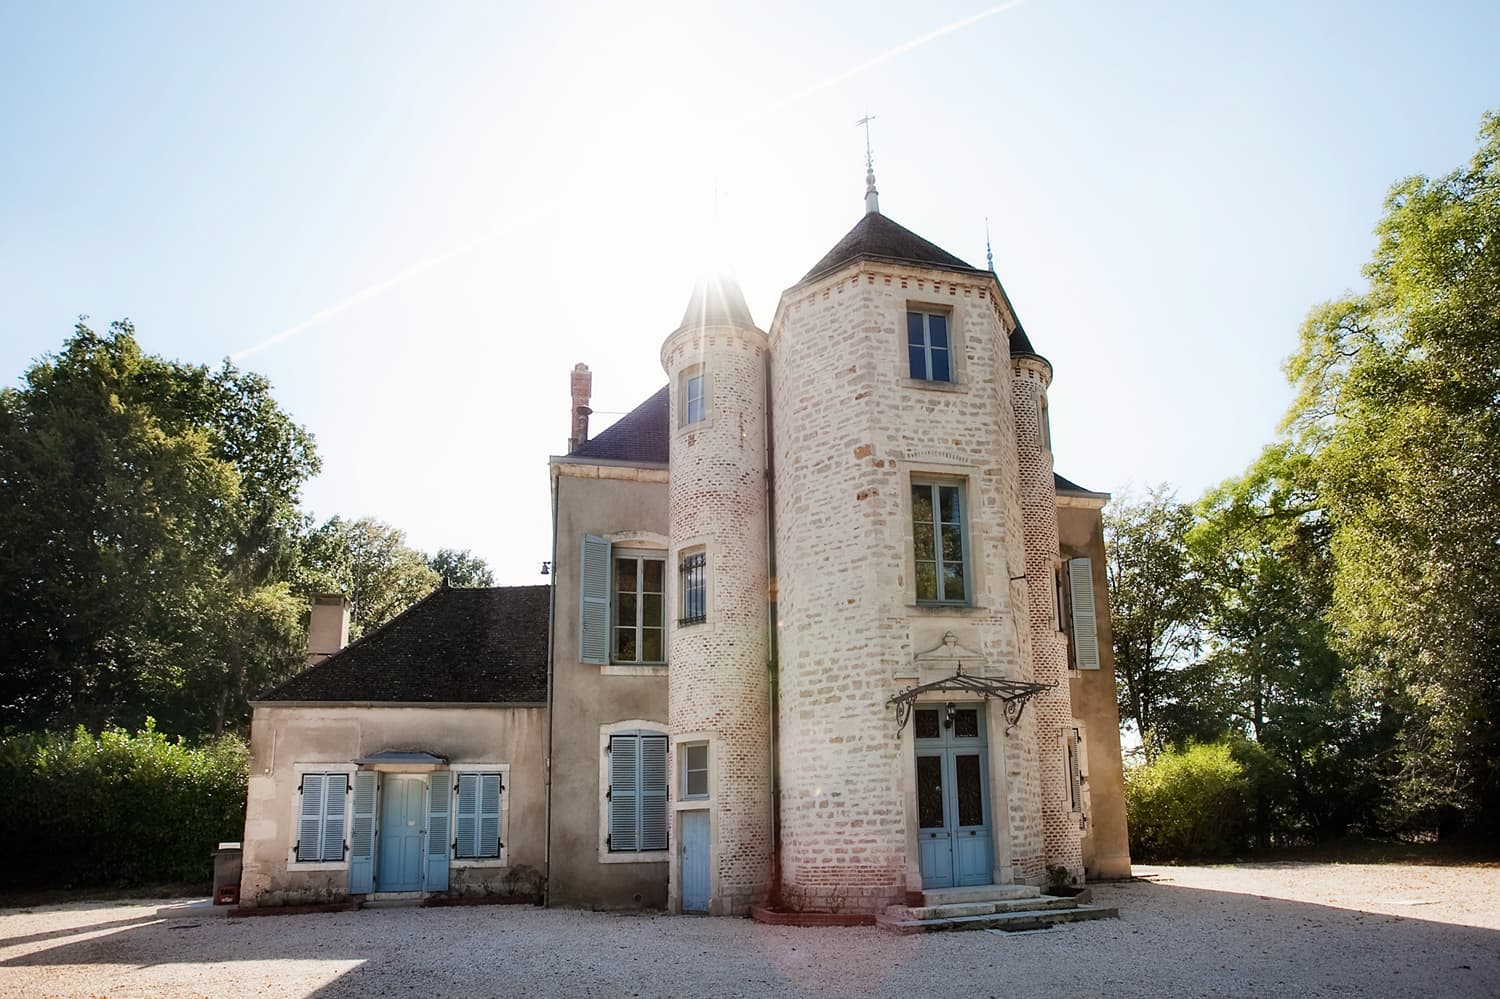 Holiday rental château in Burgundy